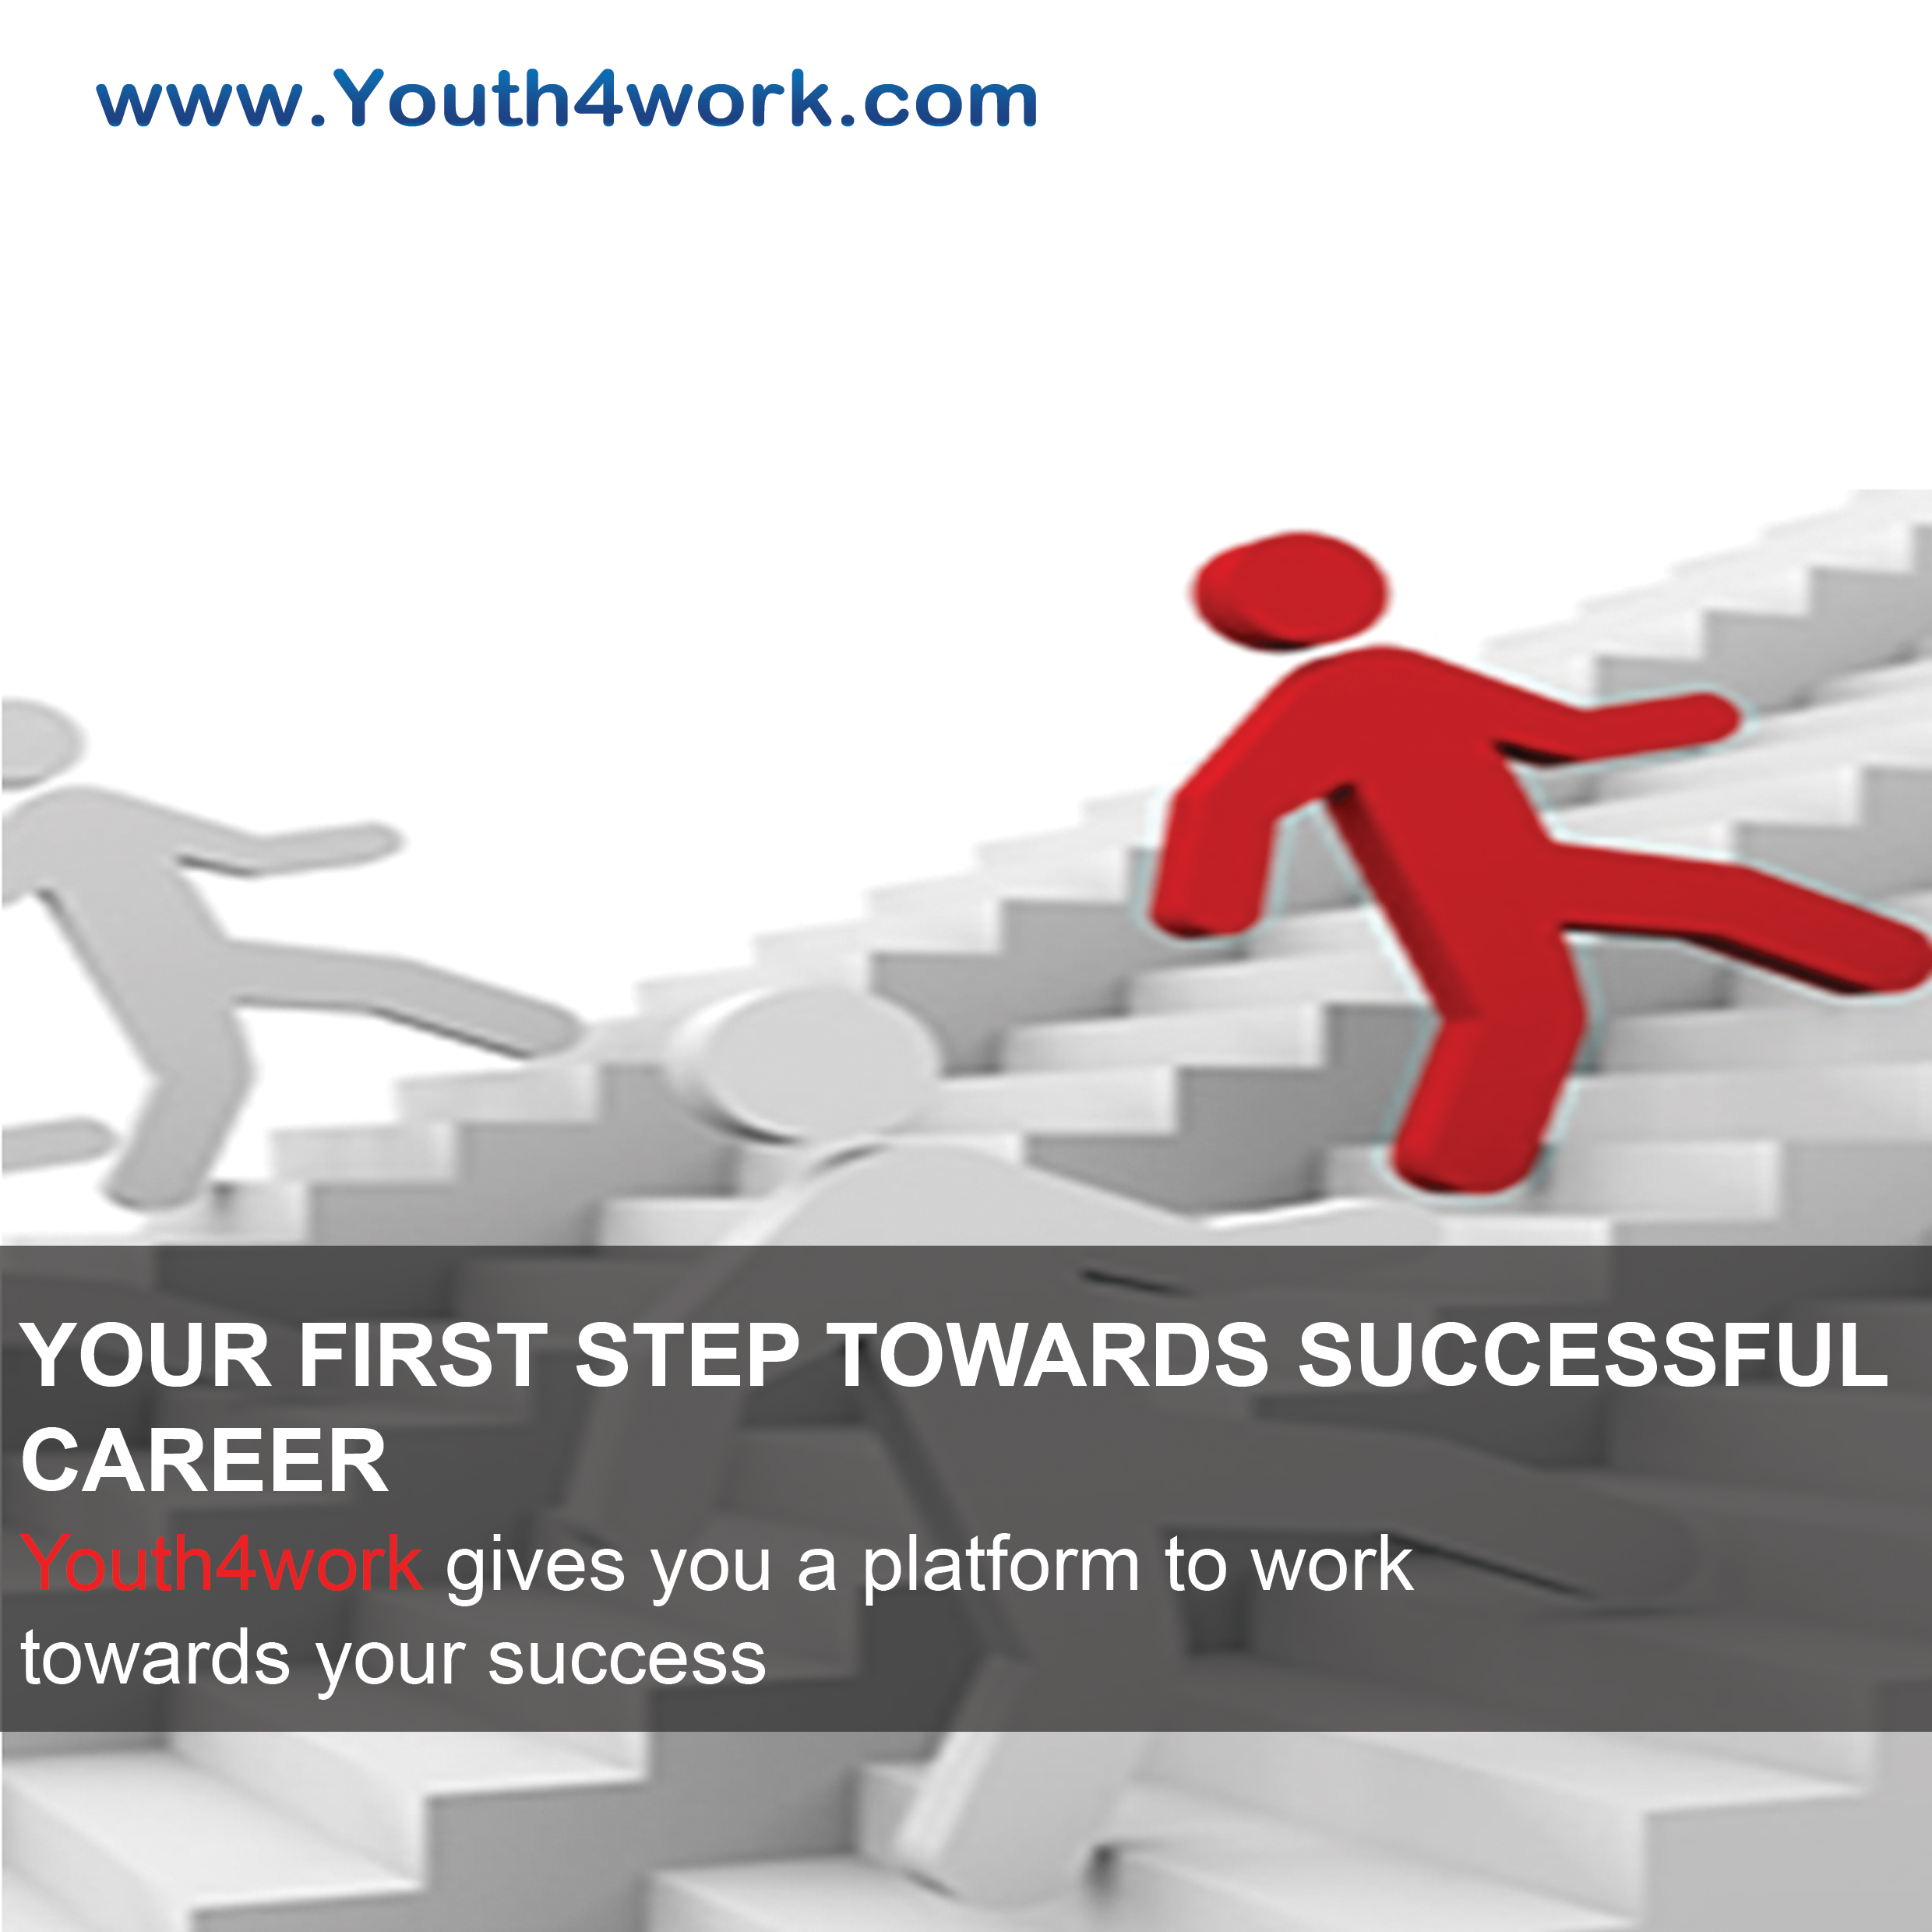 YOUR FIRST STEP TOWARDS SUCCESSFUL CAREER